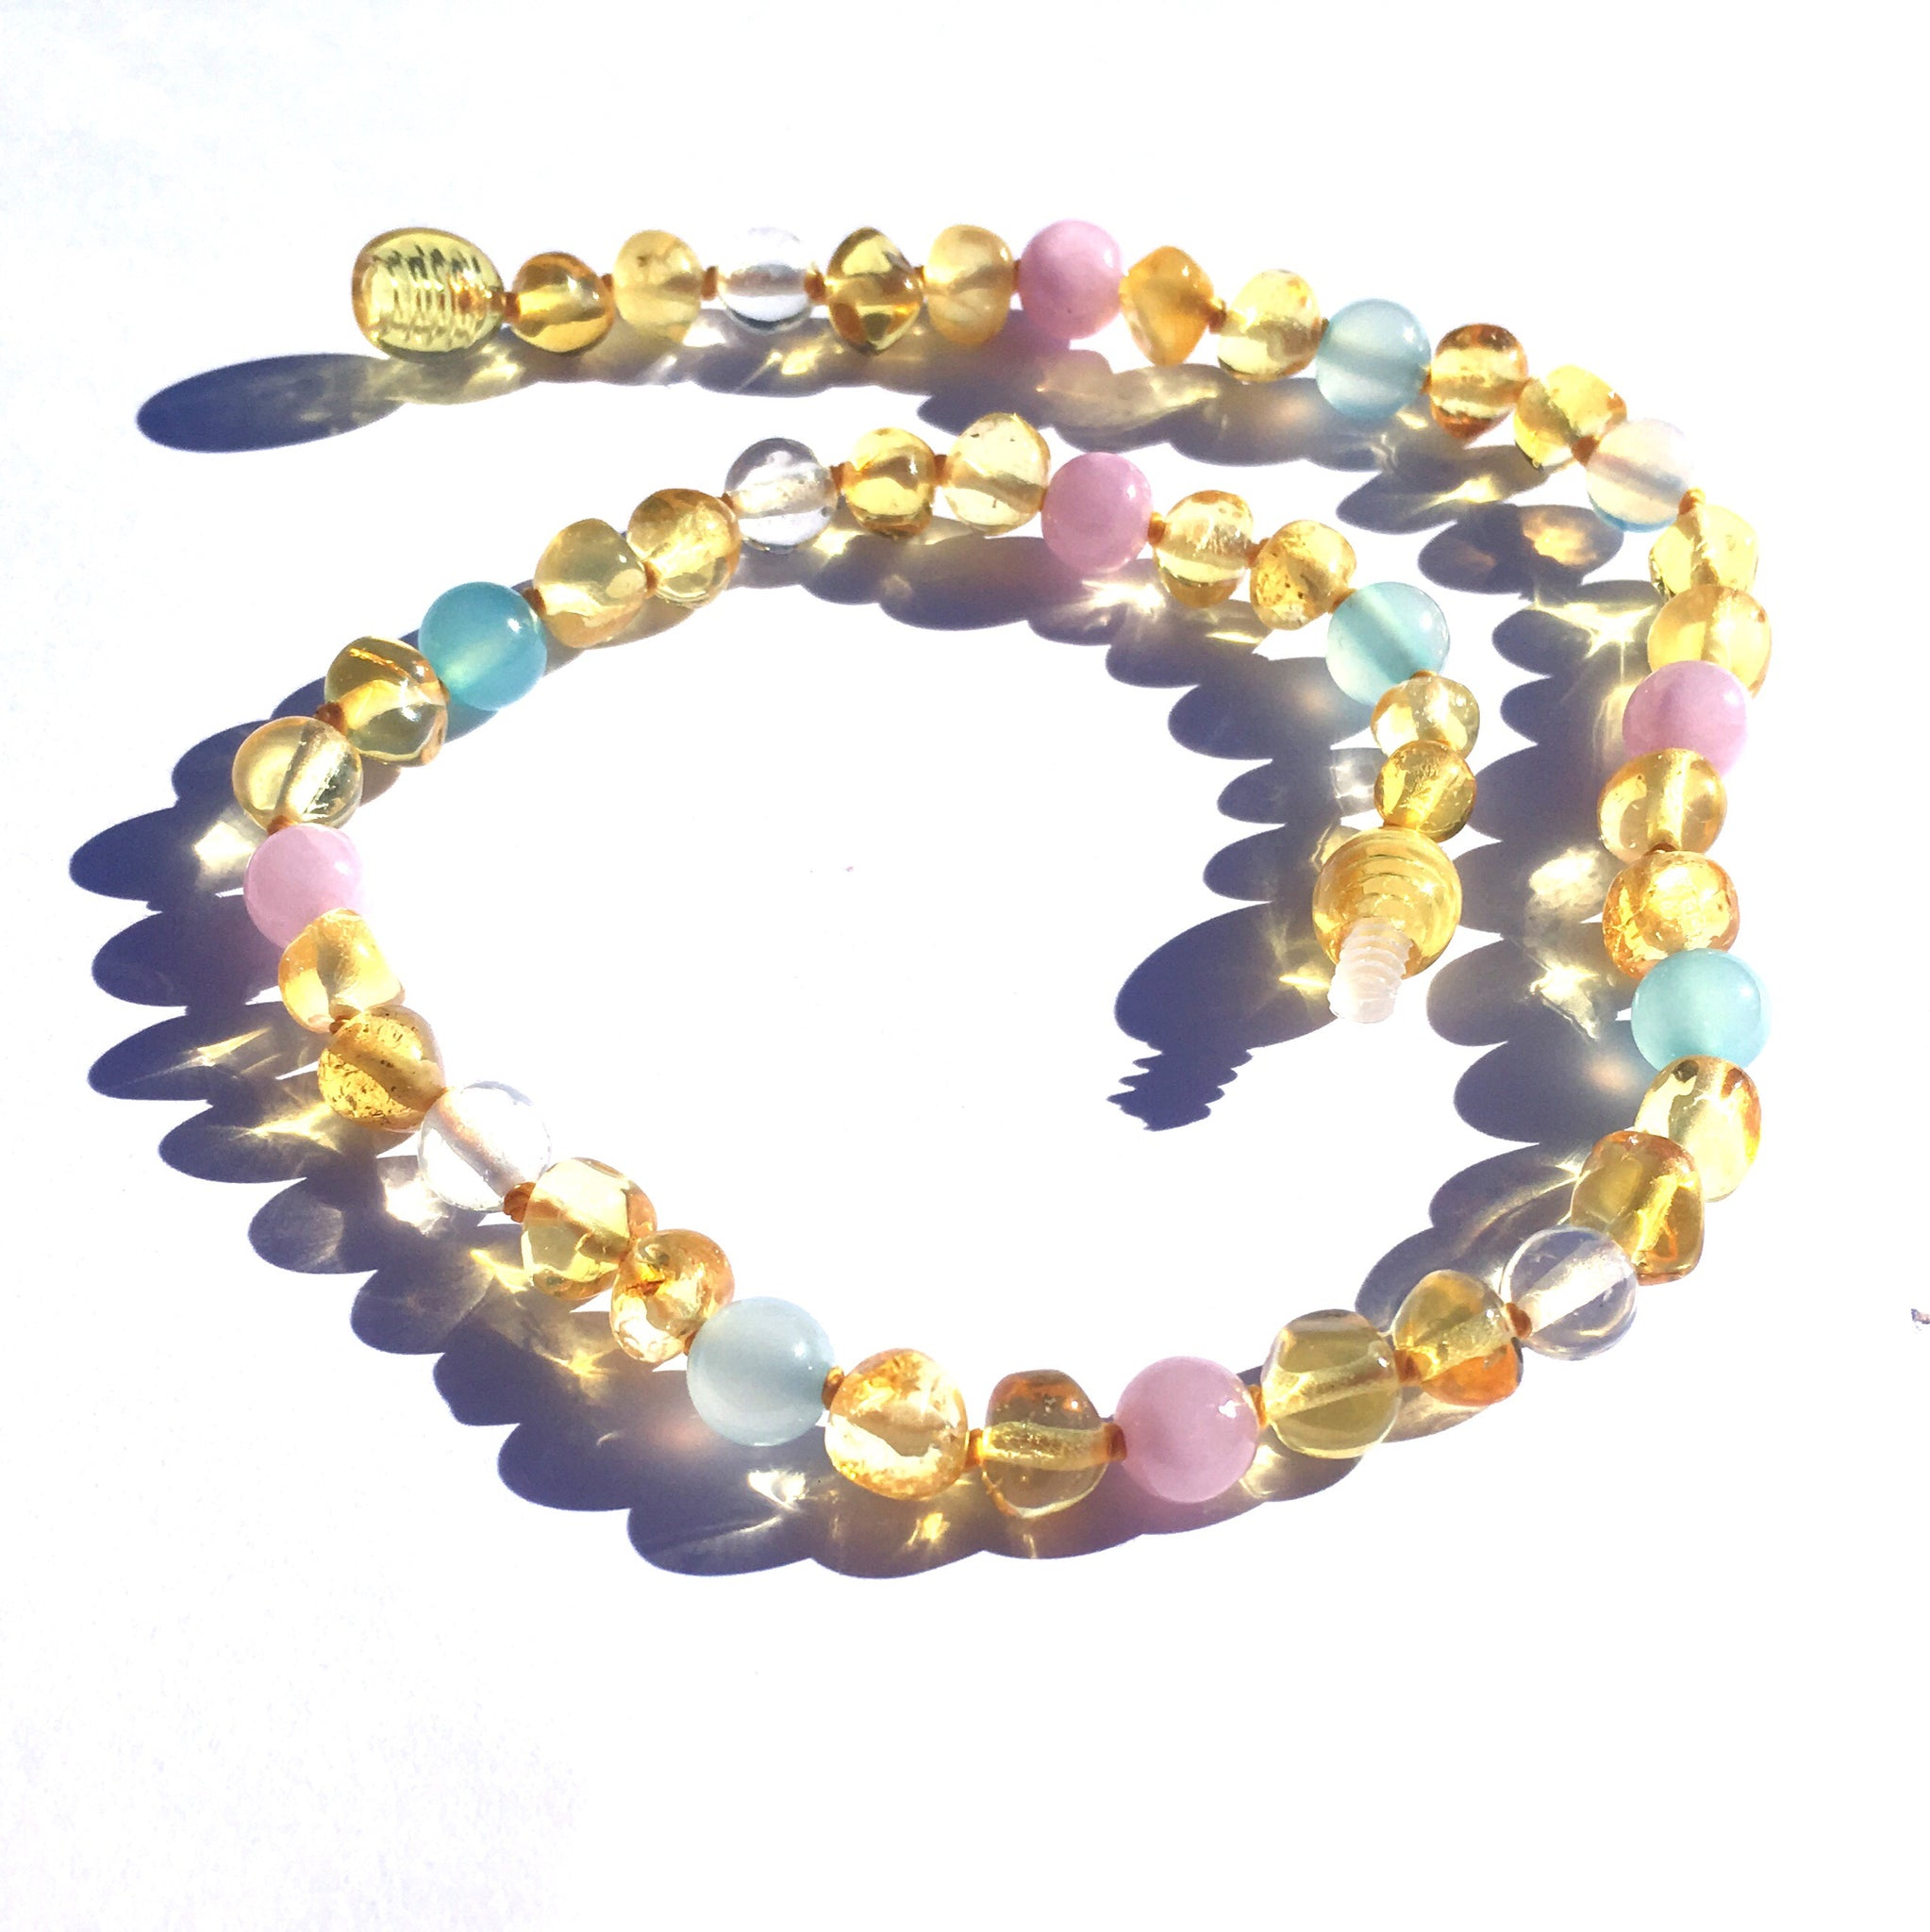 Amber and Gemstone Necklace - Wild Lemon - Crunch Natural Parenting is where to buy